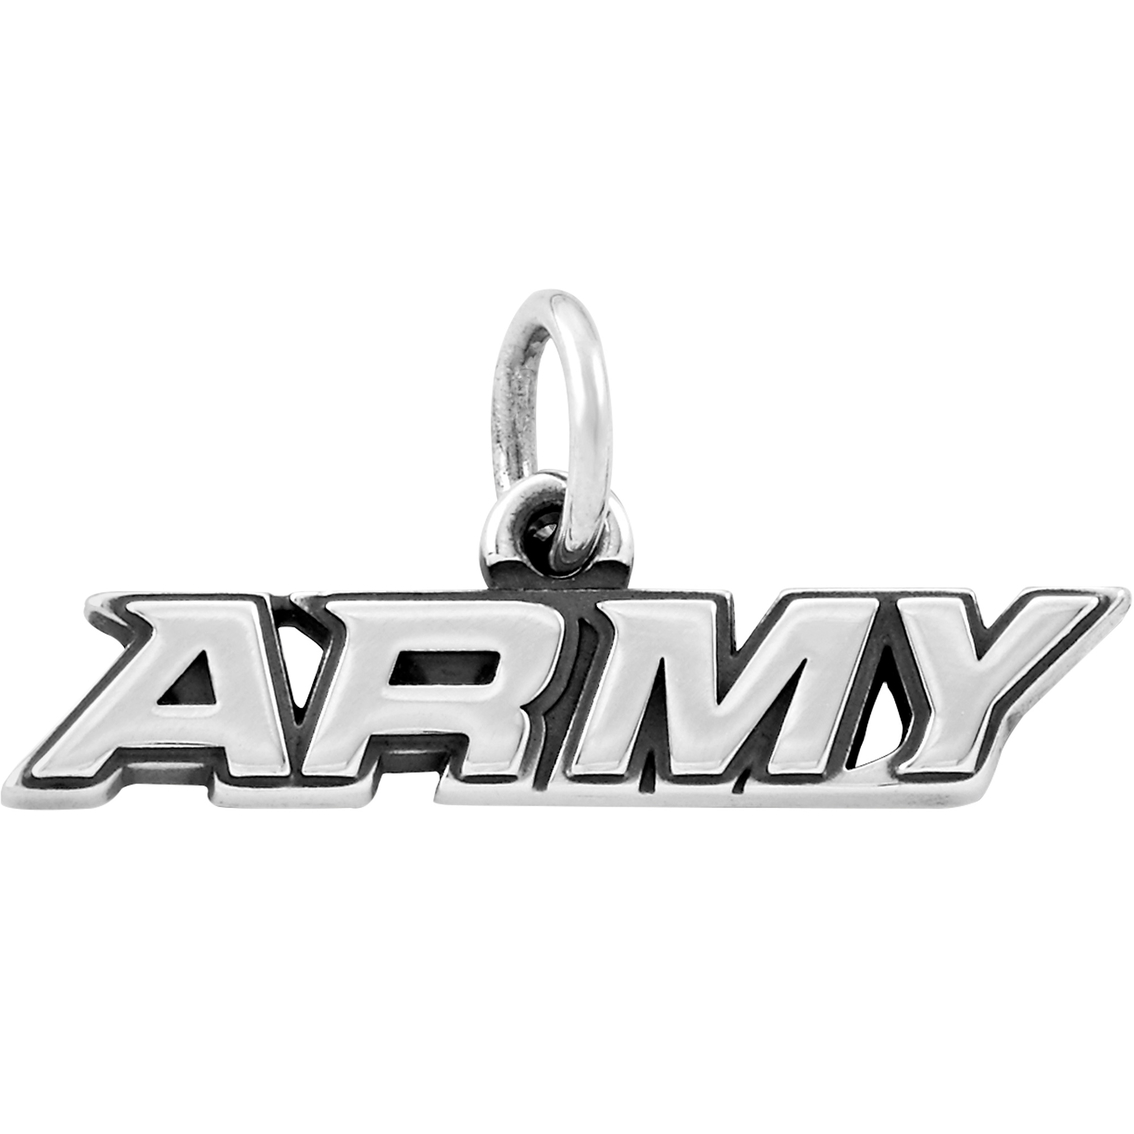 James Avery Army Charm.